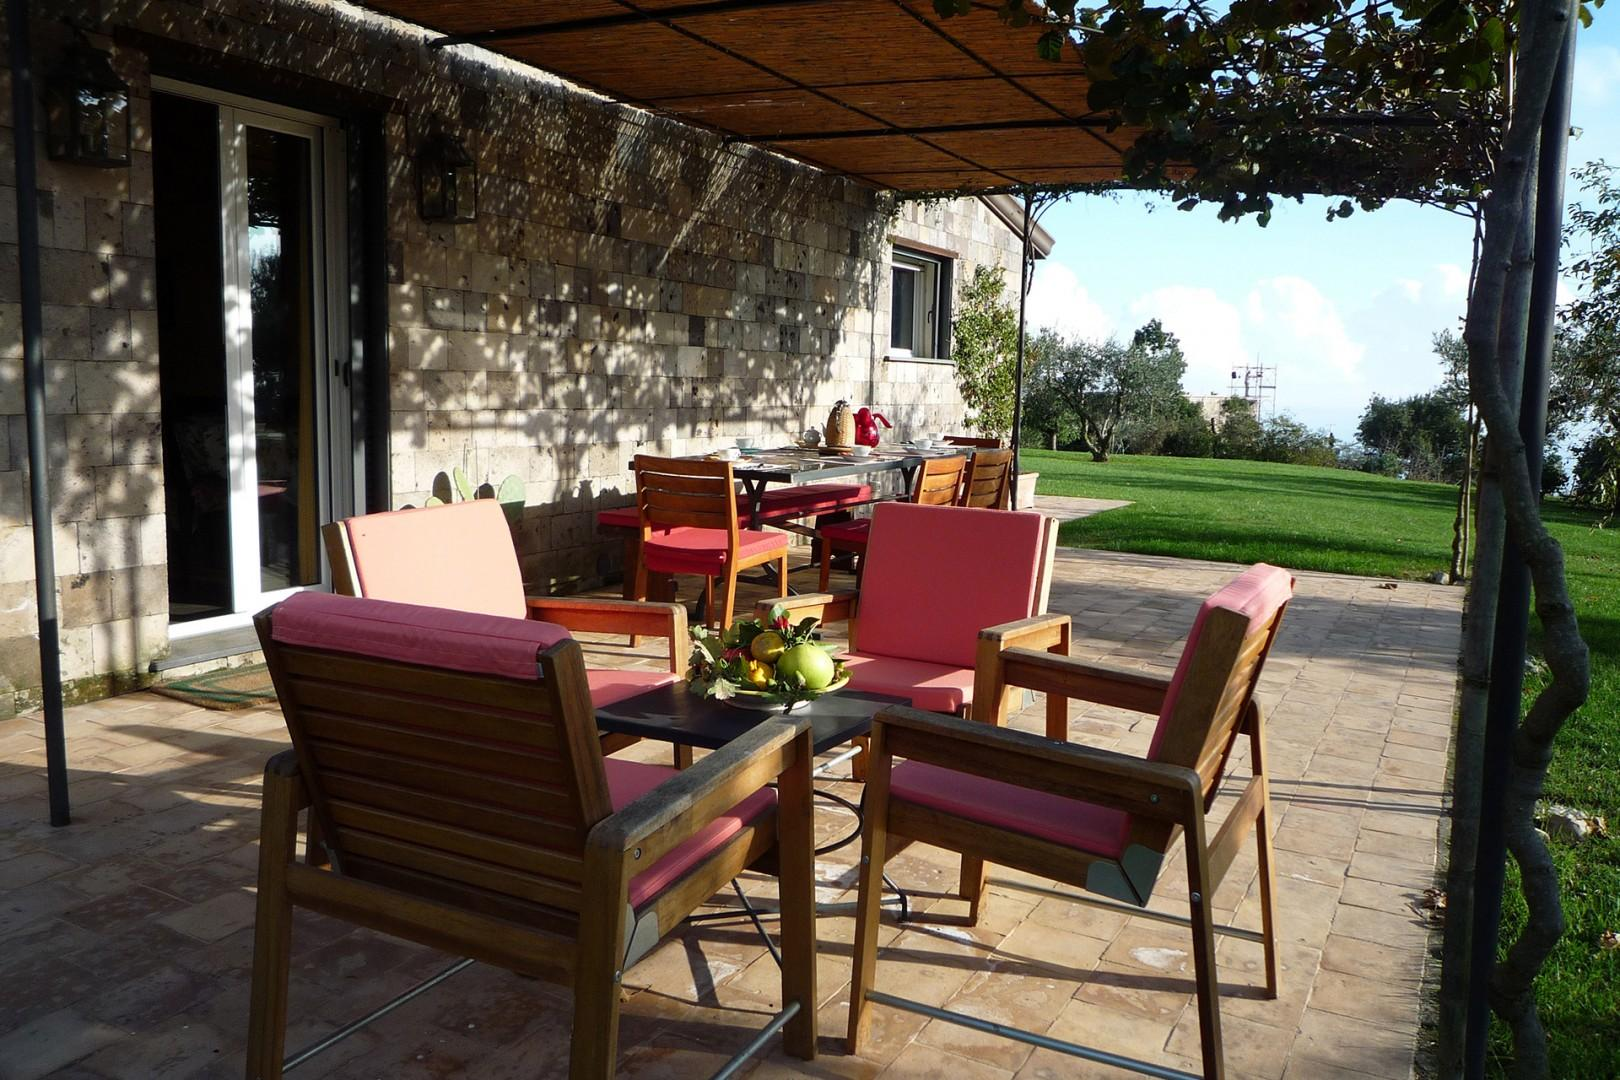 Plenty of outdoor seating on the terrace.